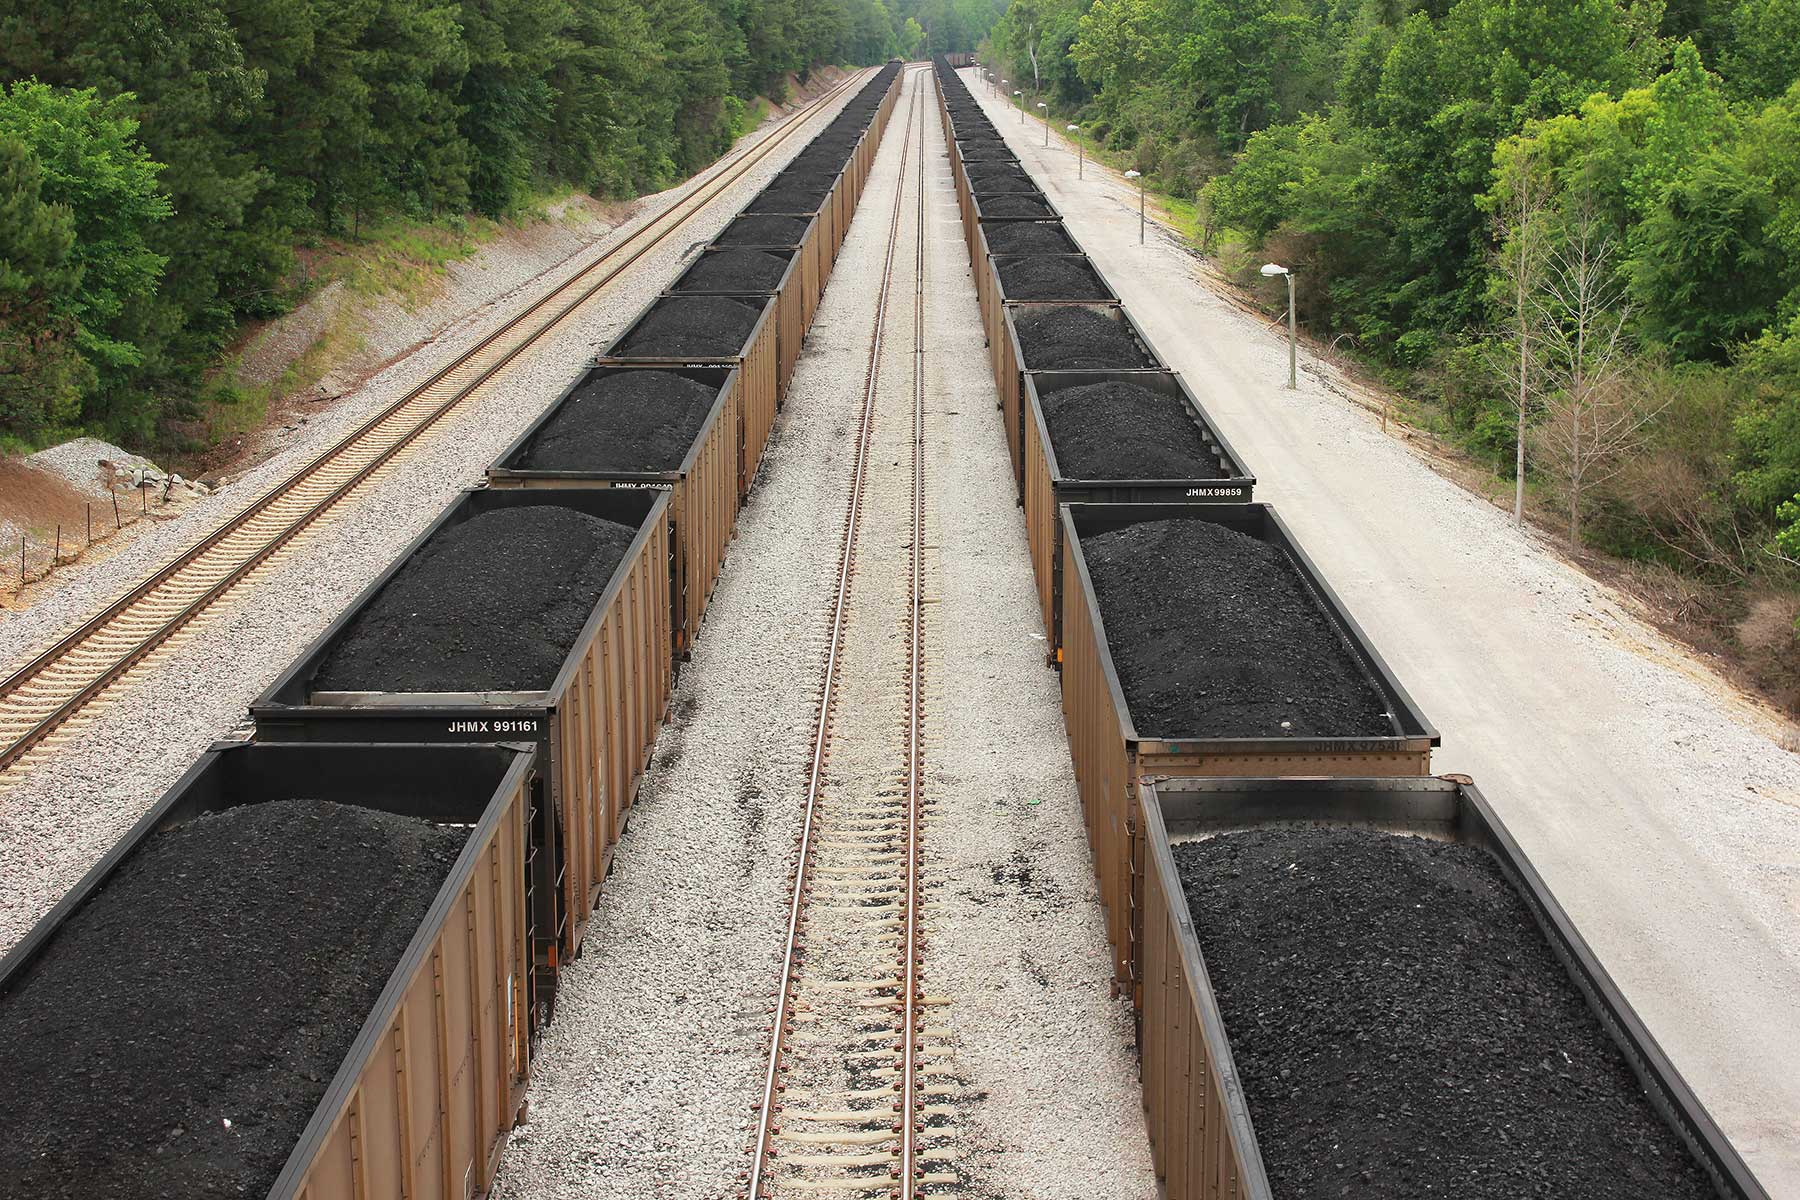 At all hours of the day and night massive coal trains deliver the fossil fuel that powers Miller and creates its nation-leading carbon output.